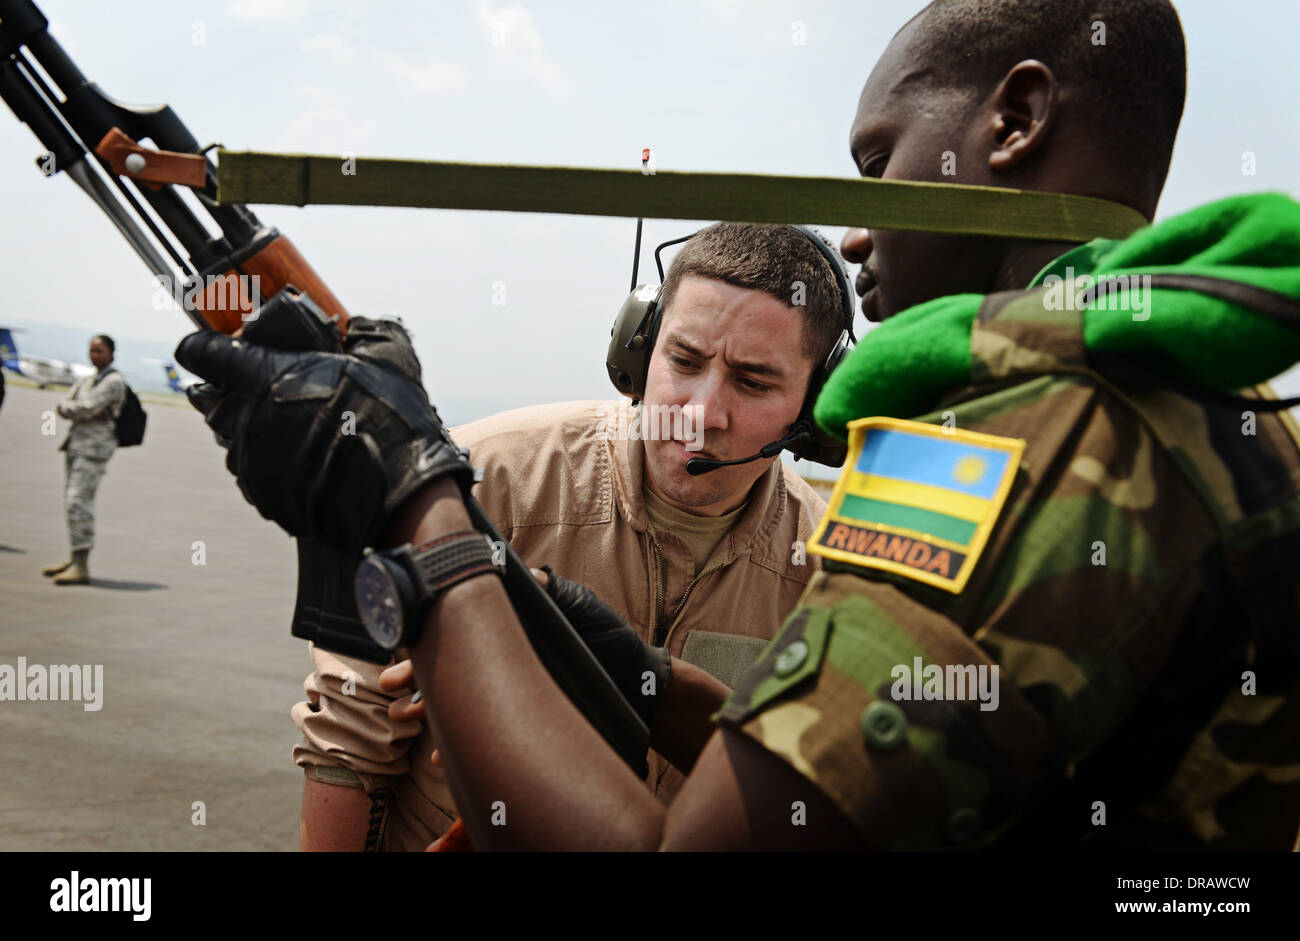 Rwandan soldiers have their weapons inspected before boarding a US Air Force C-17 Globemaster III aircraft in support of an African Union effort to quell violence in the Central African Republic January 19, 2014 in Kigali, Rwanda. - Stock Image